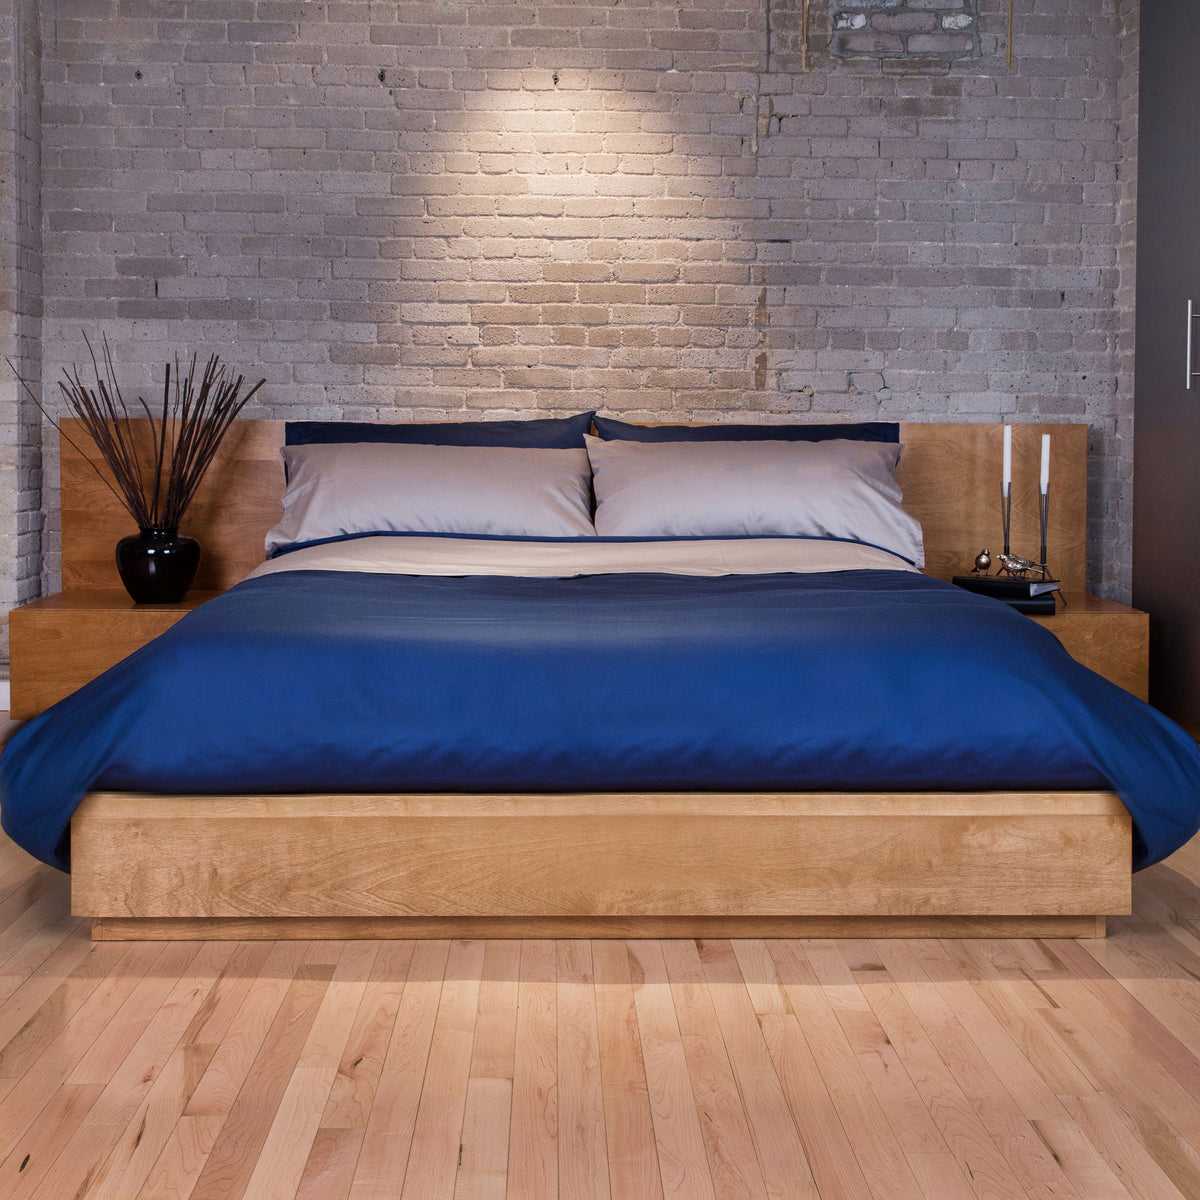 Blue Bed Sheets Brick Wall